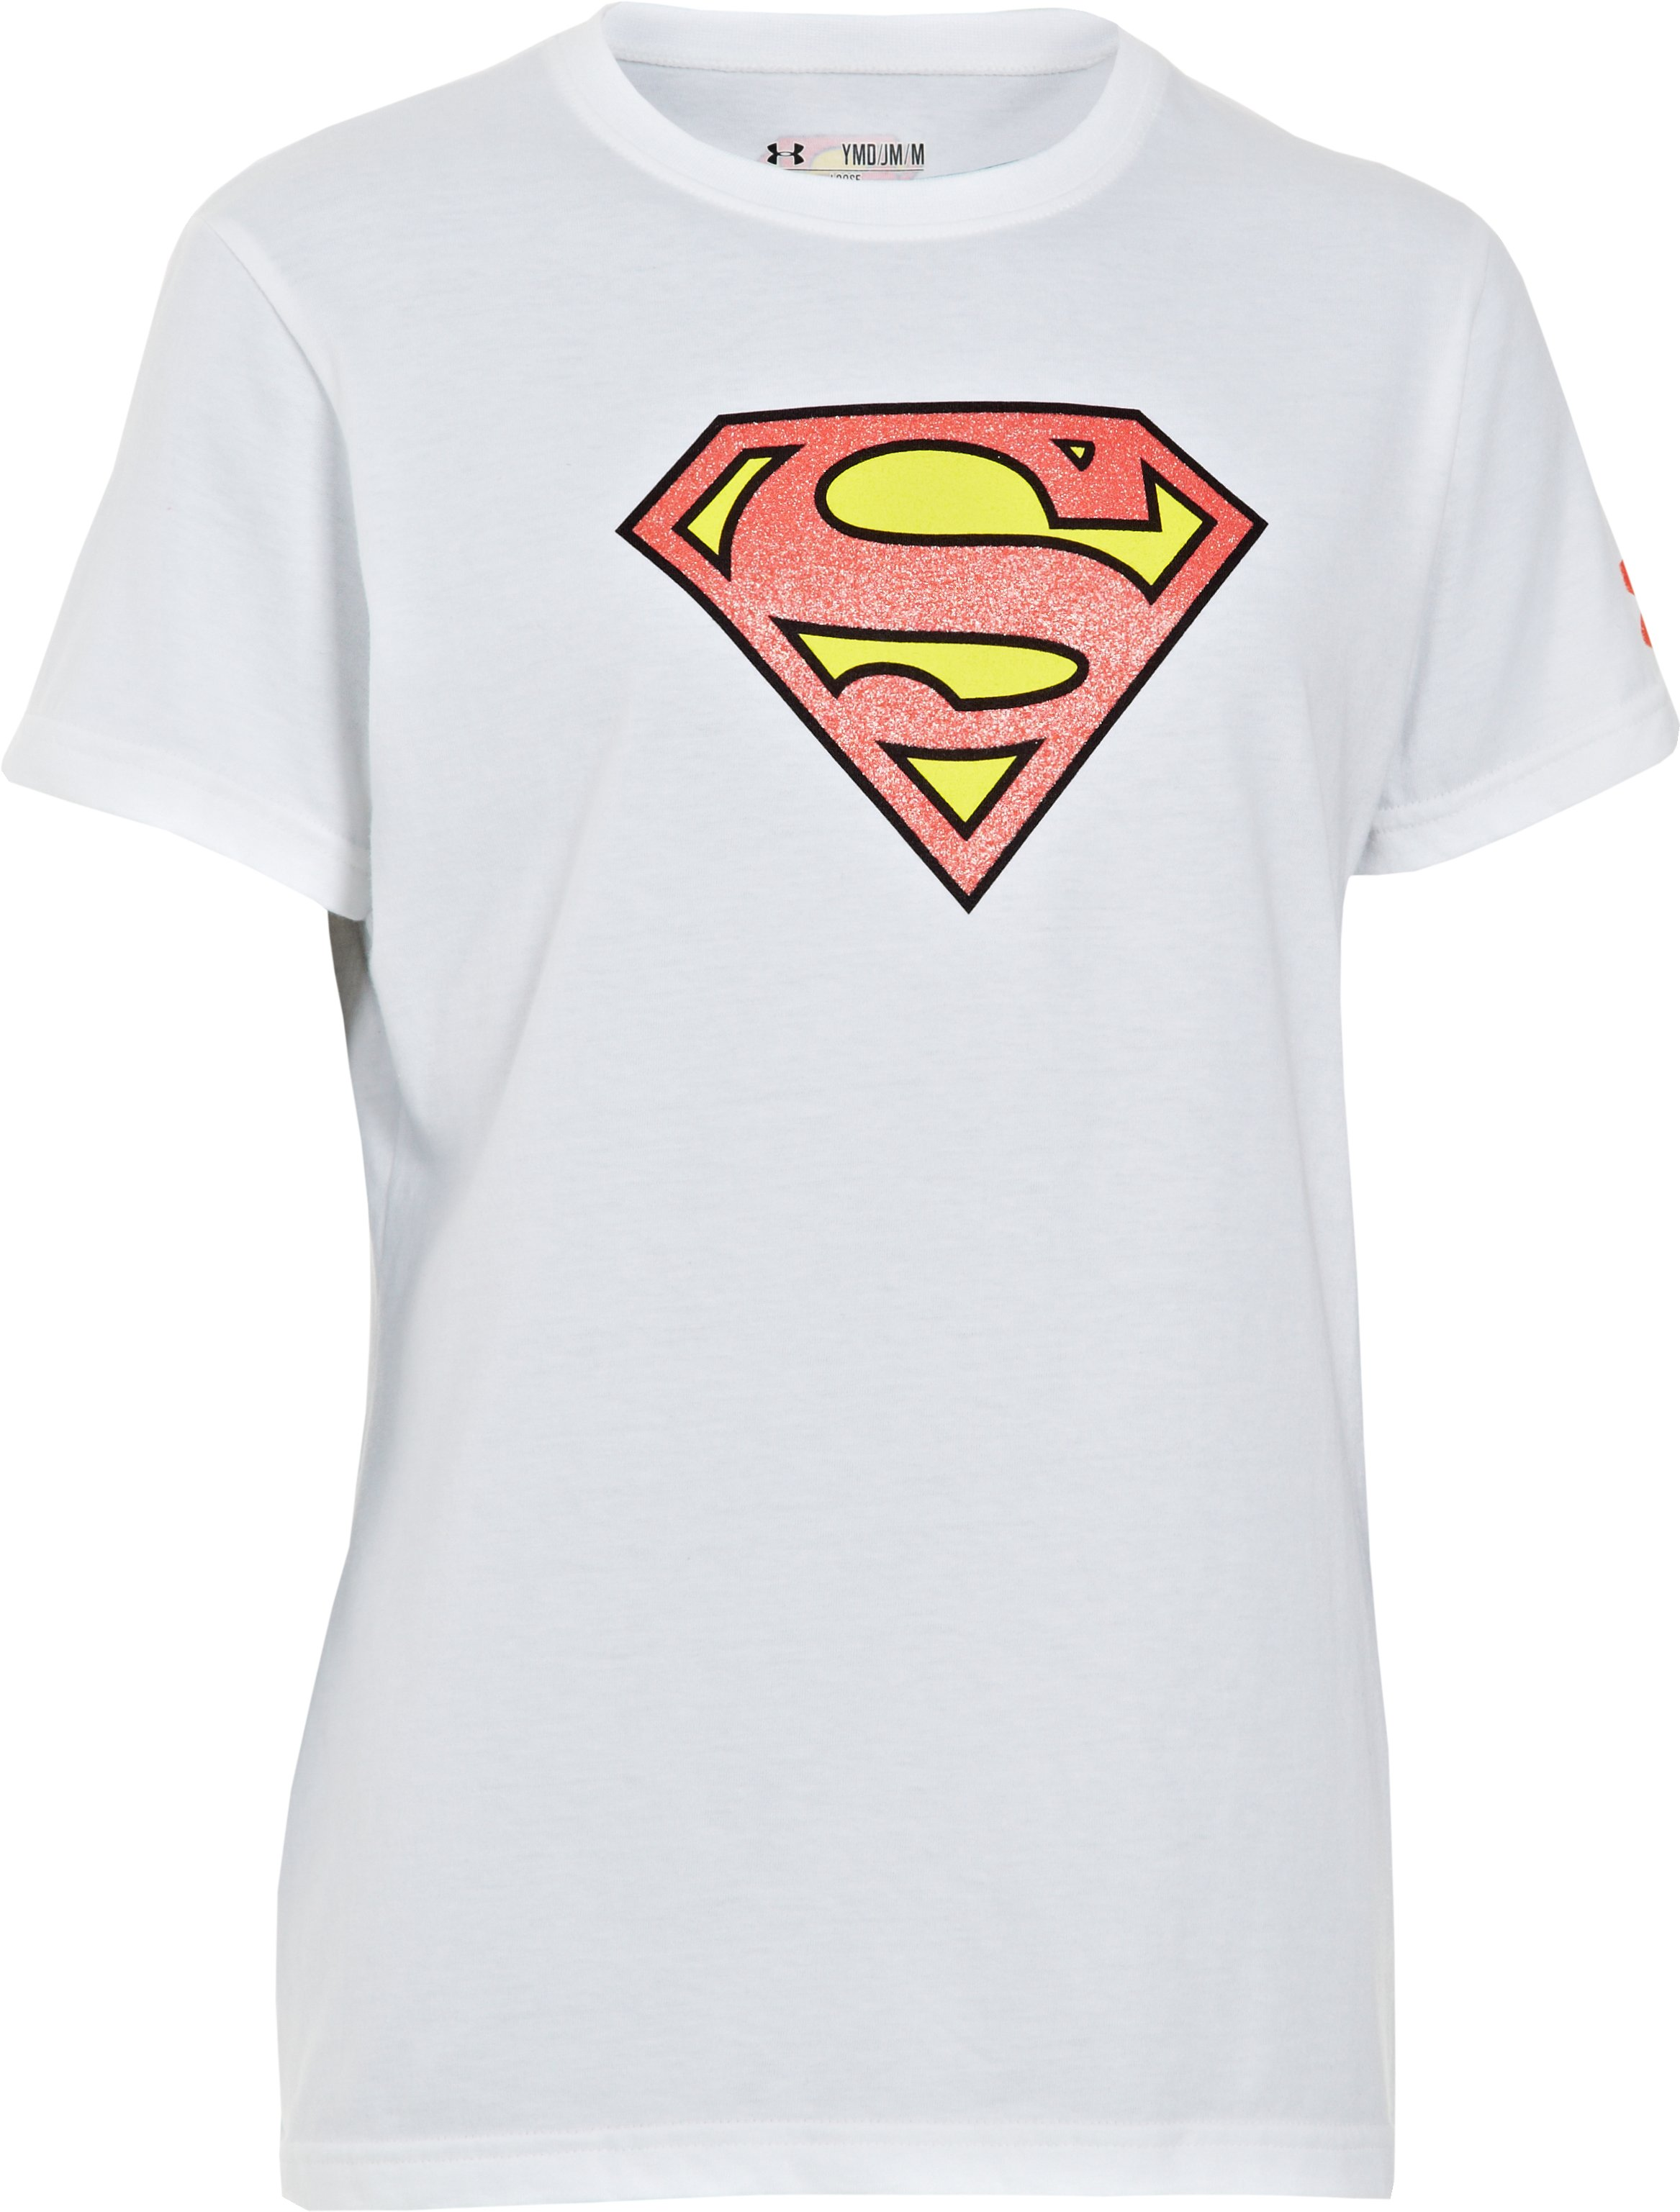 Girls' Under Armour® Alter Ego Supergirl T-Shirt, White,